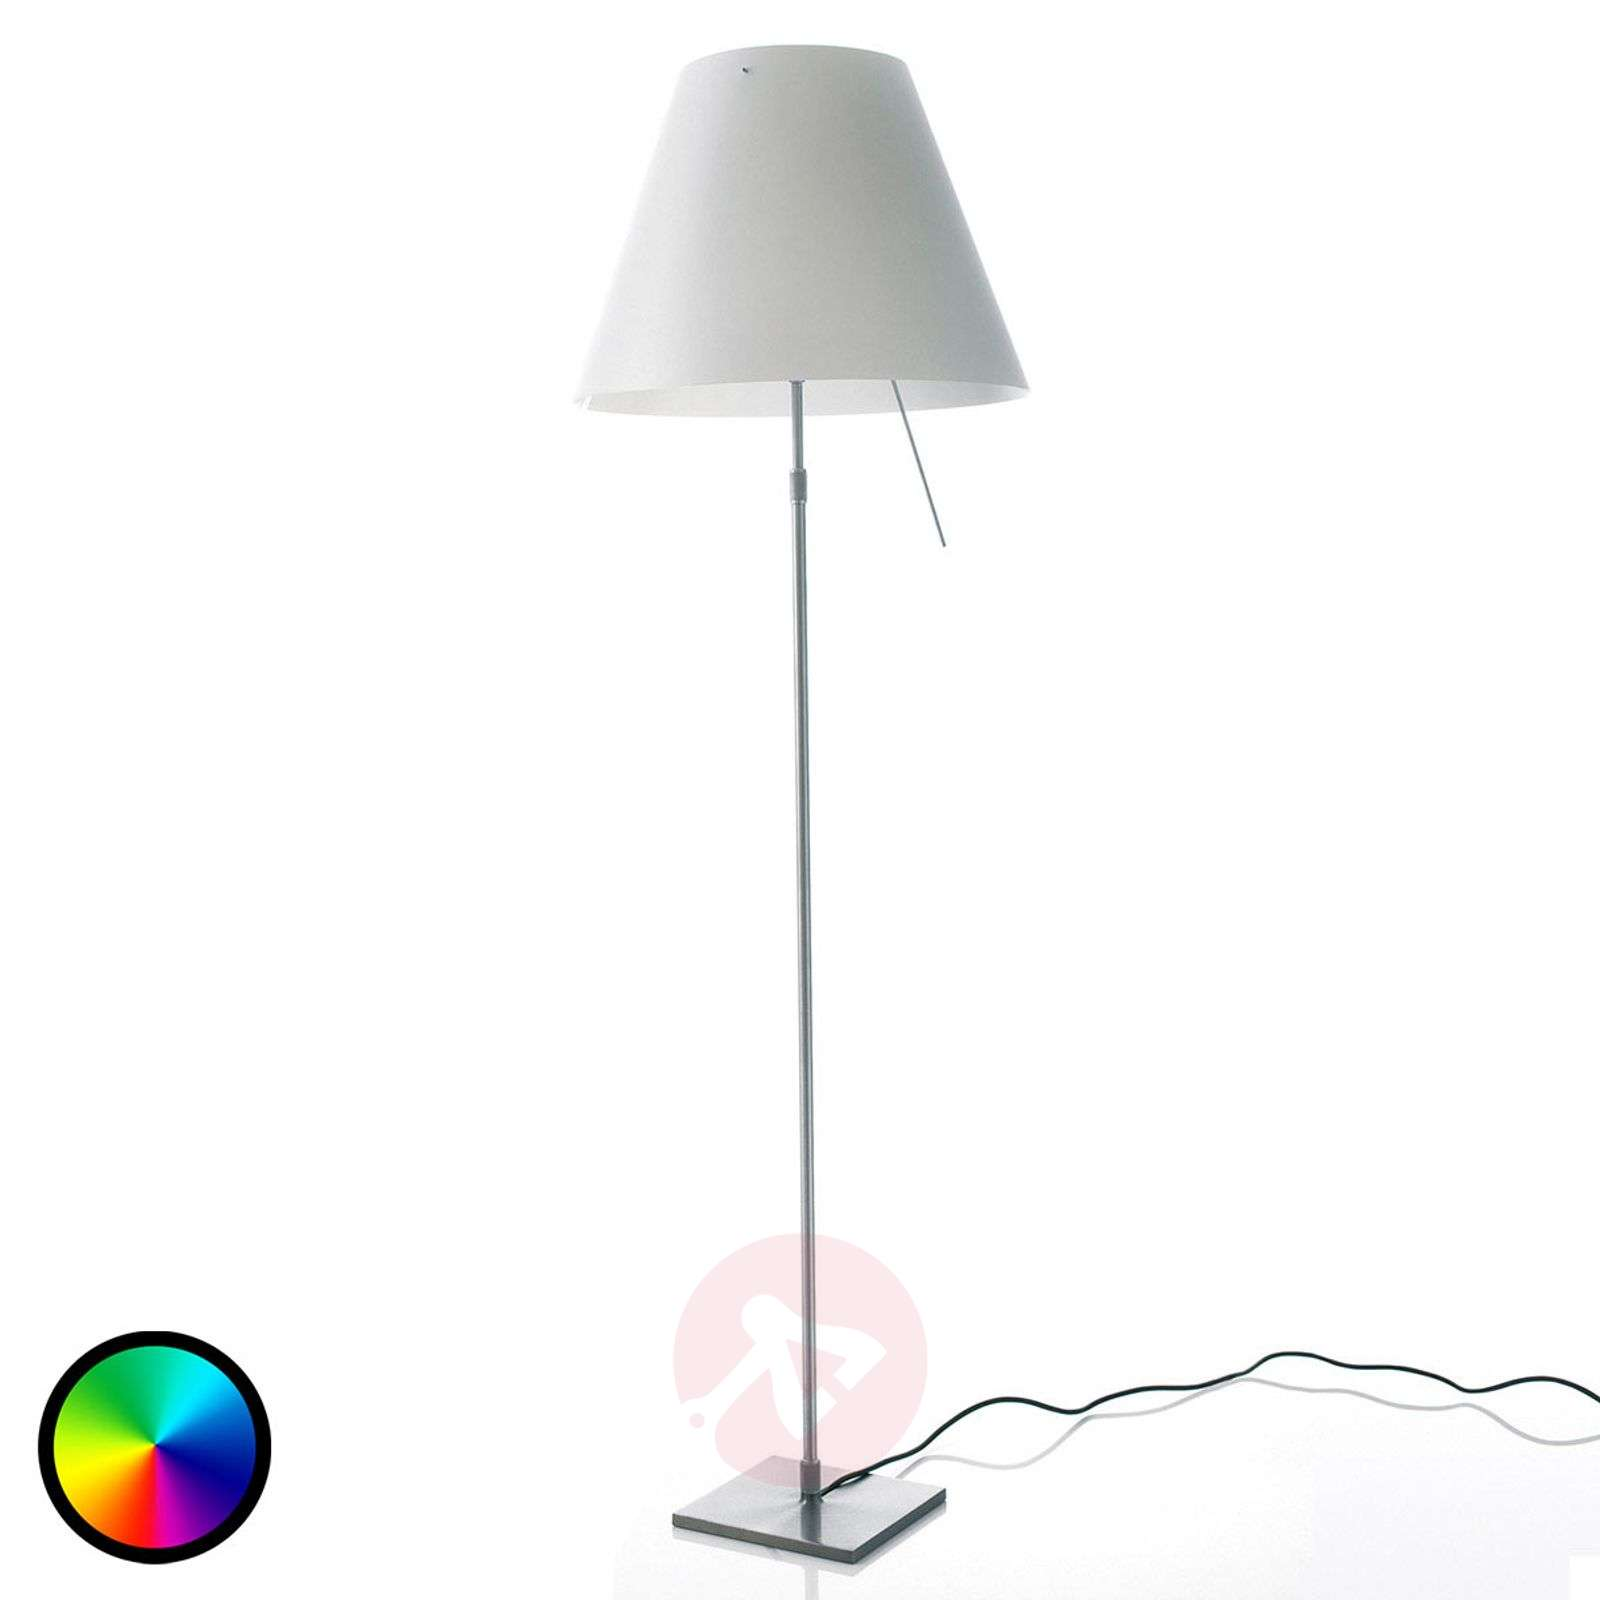 Luceplan Costanza floor lamp with Philips Hue bulb-6030167-01